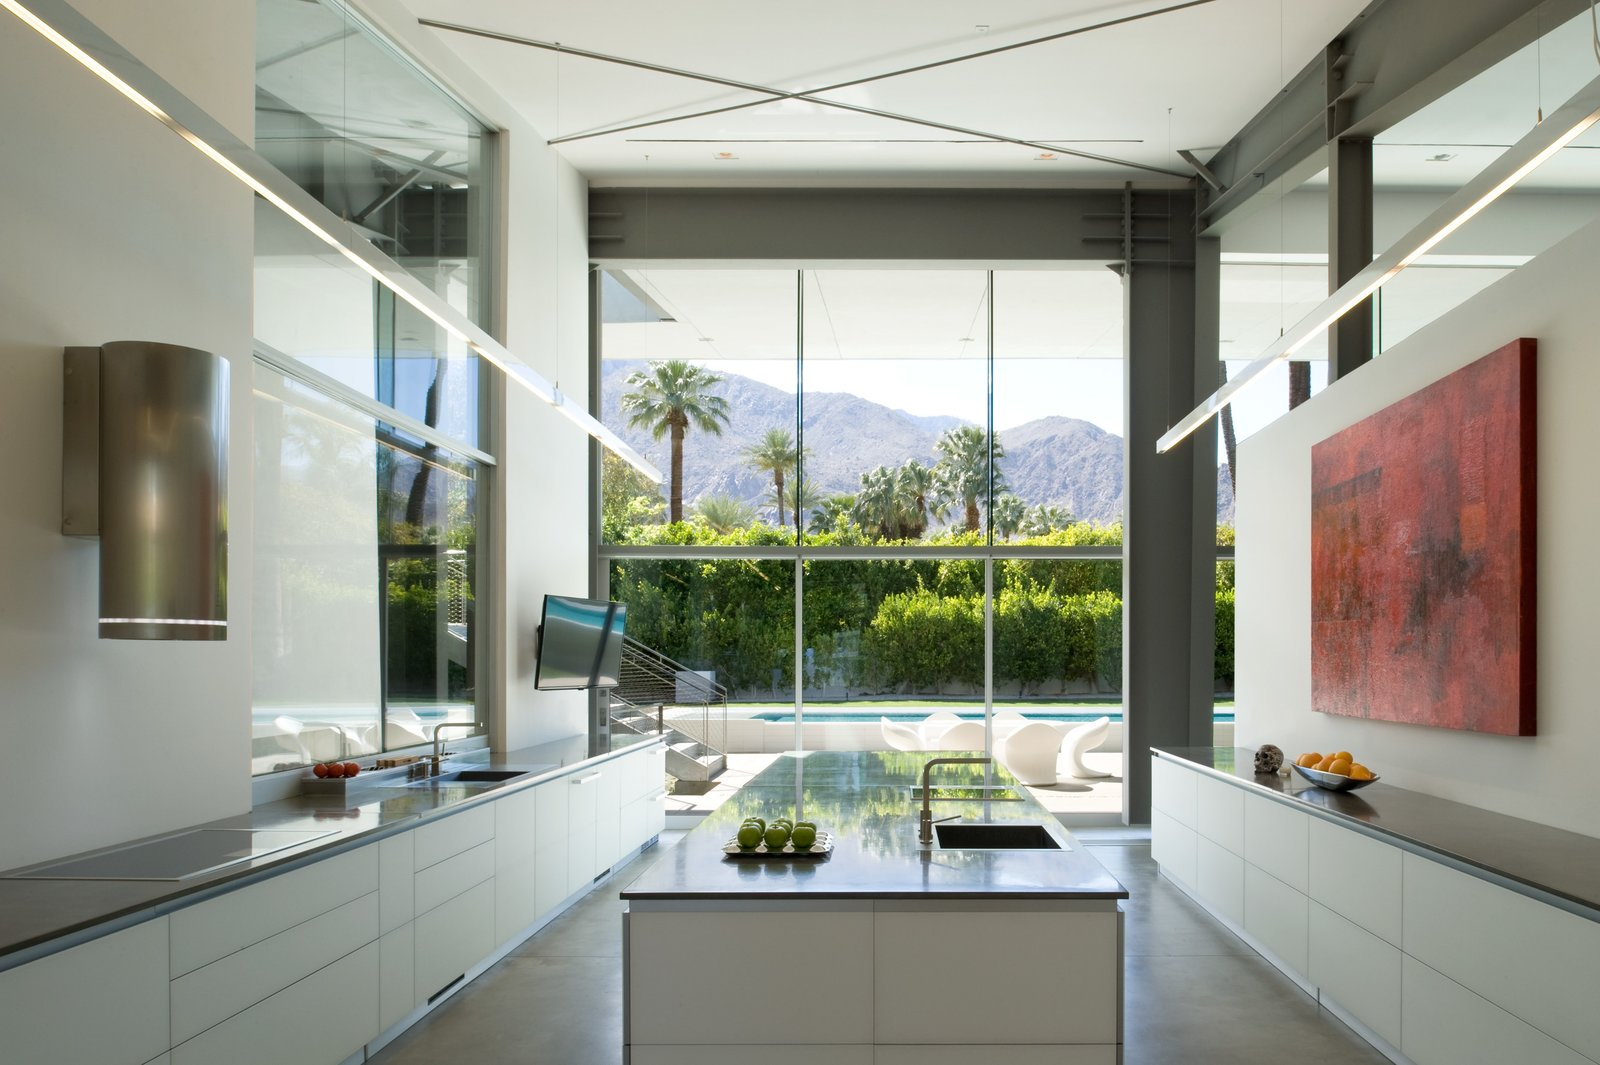 The glass wall on one end of the kitchen frames the mountain views. The cabinetry, all glass-fronted lowers,  with a convection stove and cylindrical vent make this room about the view and the art. Tagged: Kitchen, Concrete Floor, Concrete Counter, Pendant Lighting, White Cabinet, Range Hood, Range, Refrigerator, Wine Cooler, and Undermount Sink.  Desert Canopy House by Sander Architects